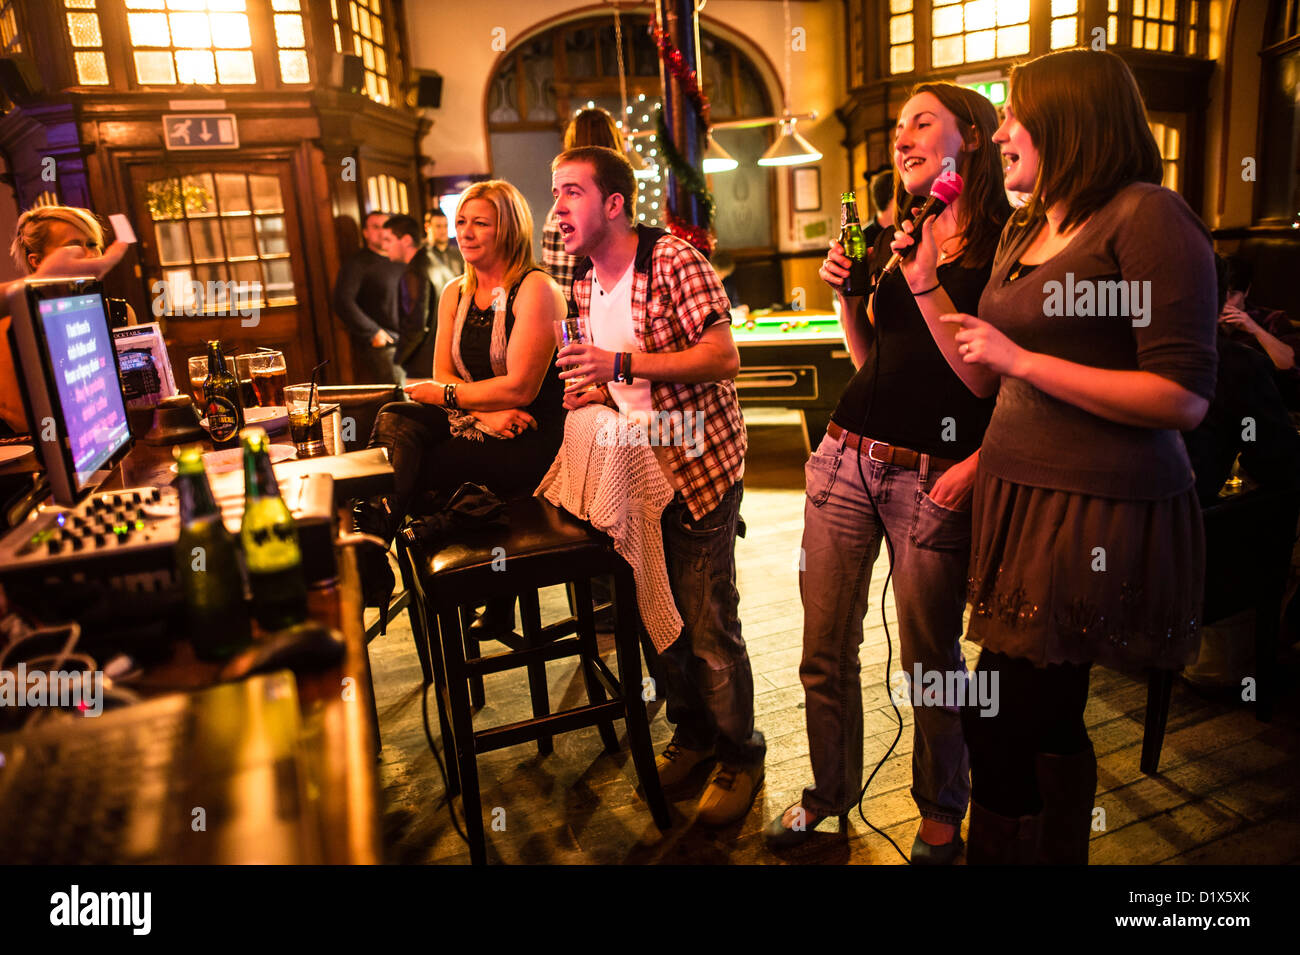 Karaoke Pub Stock Photos Amp Karaoke Pub Stock Images Alamy